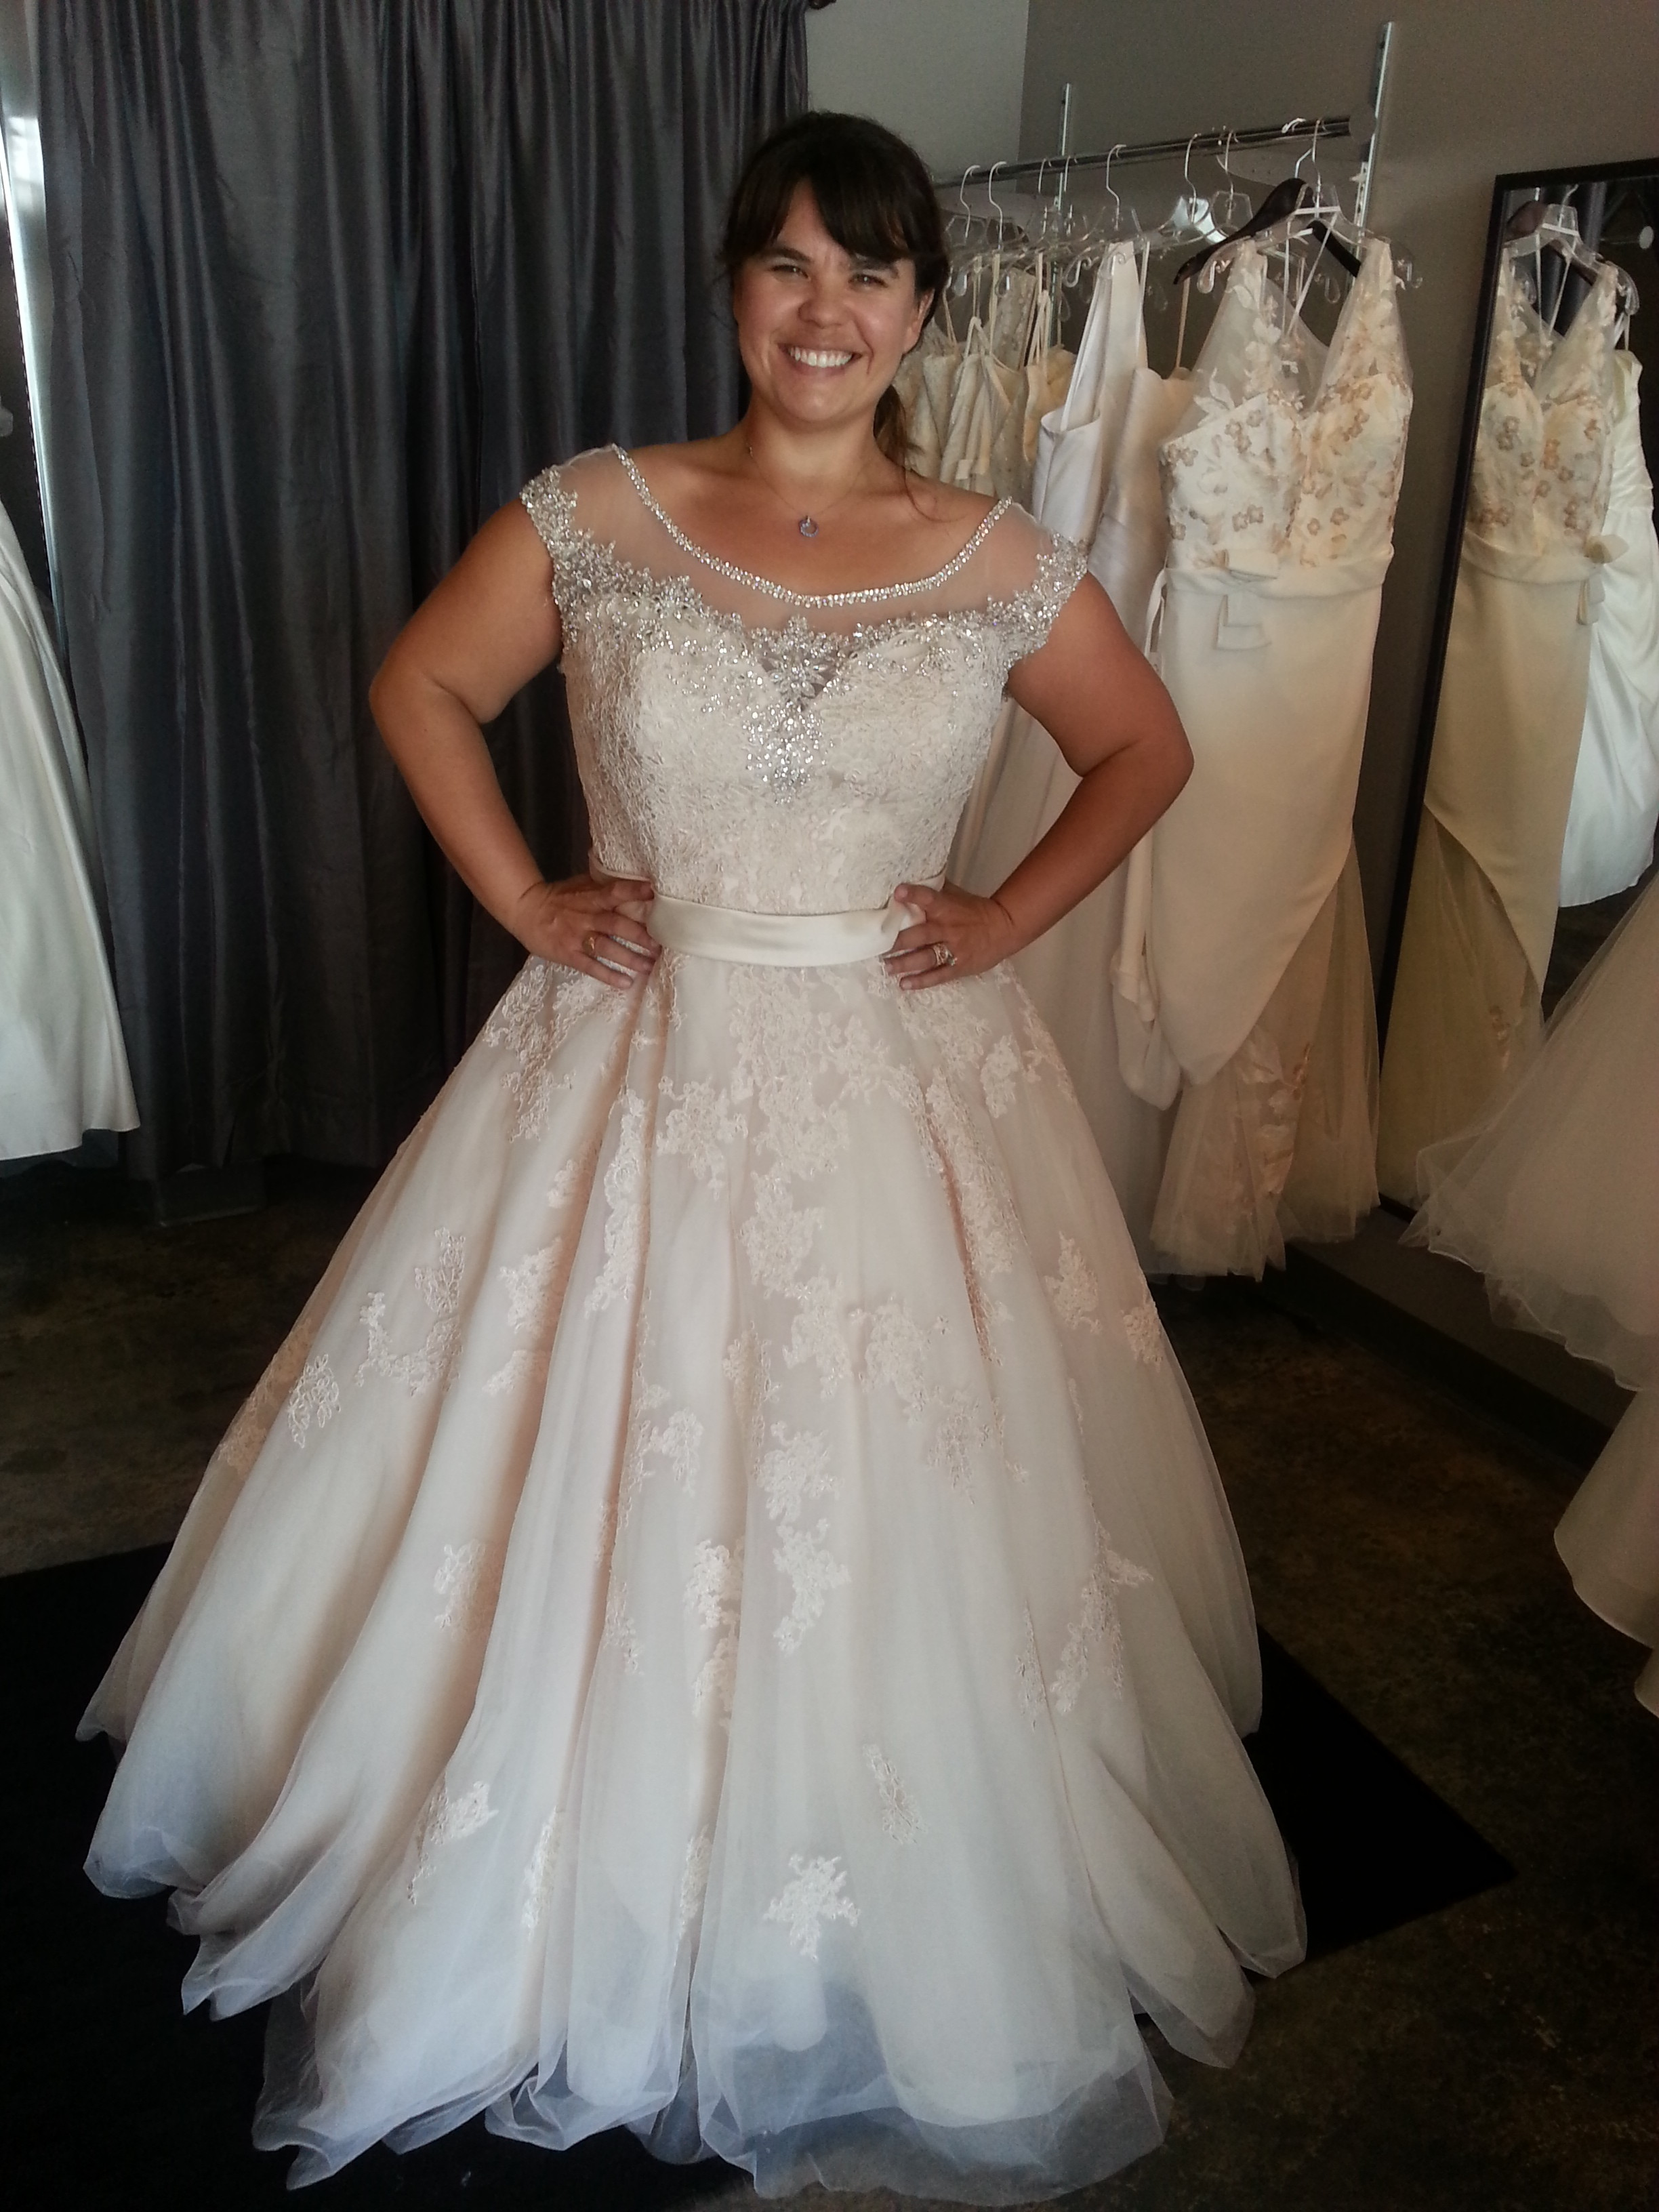 How to Shop for a Wedding Dress, Part 2 - Strut Bridal Salon